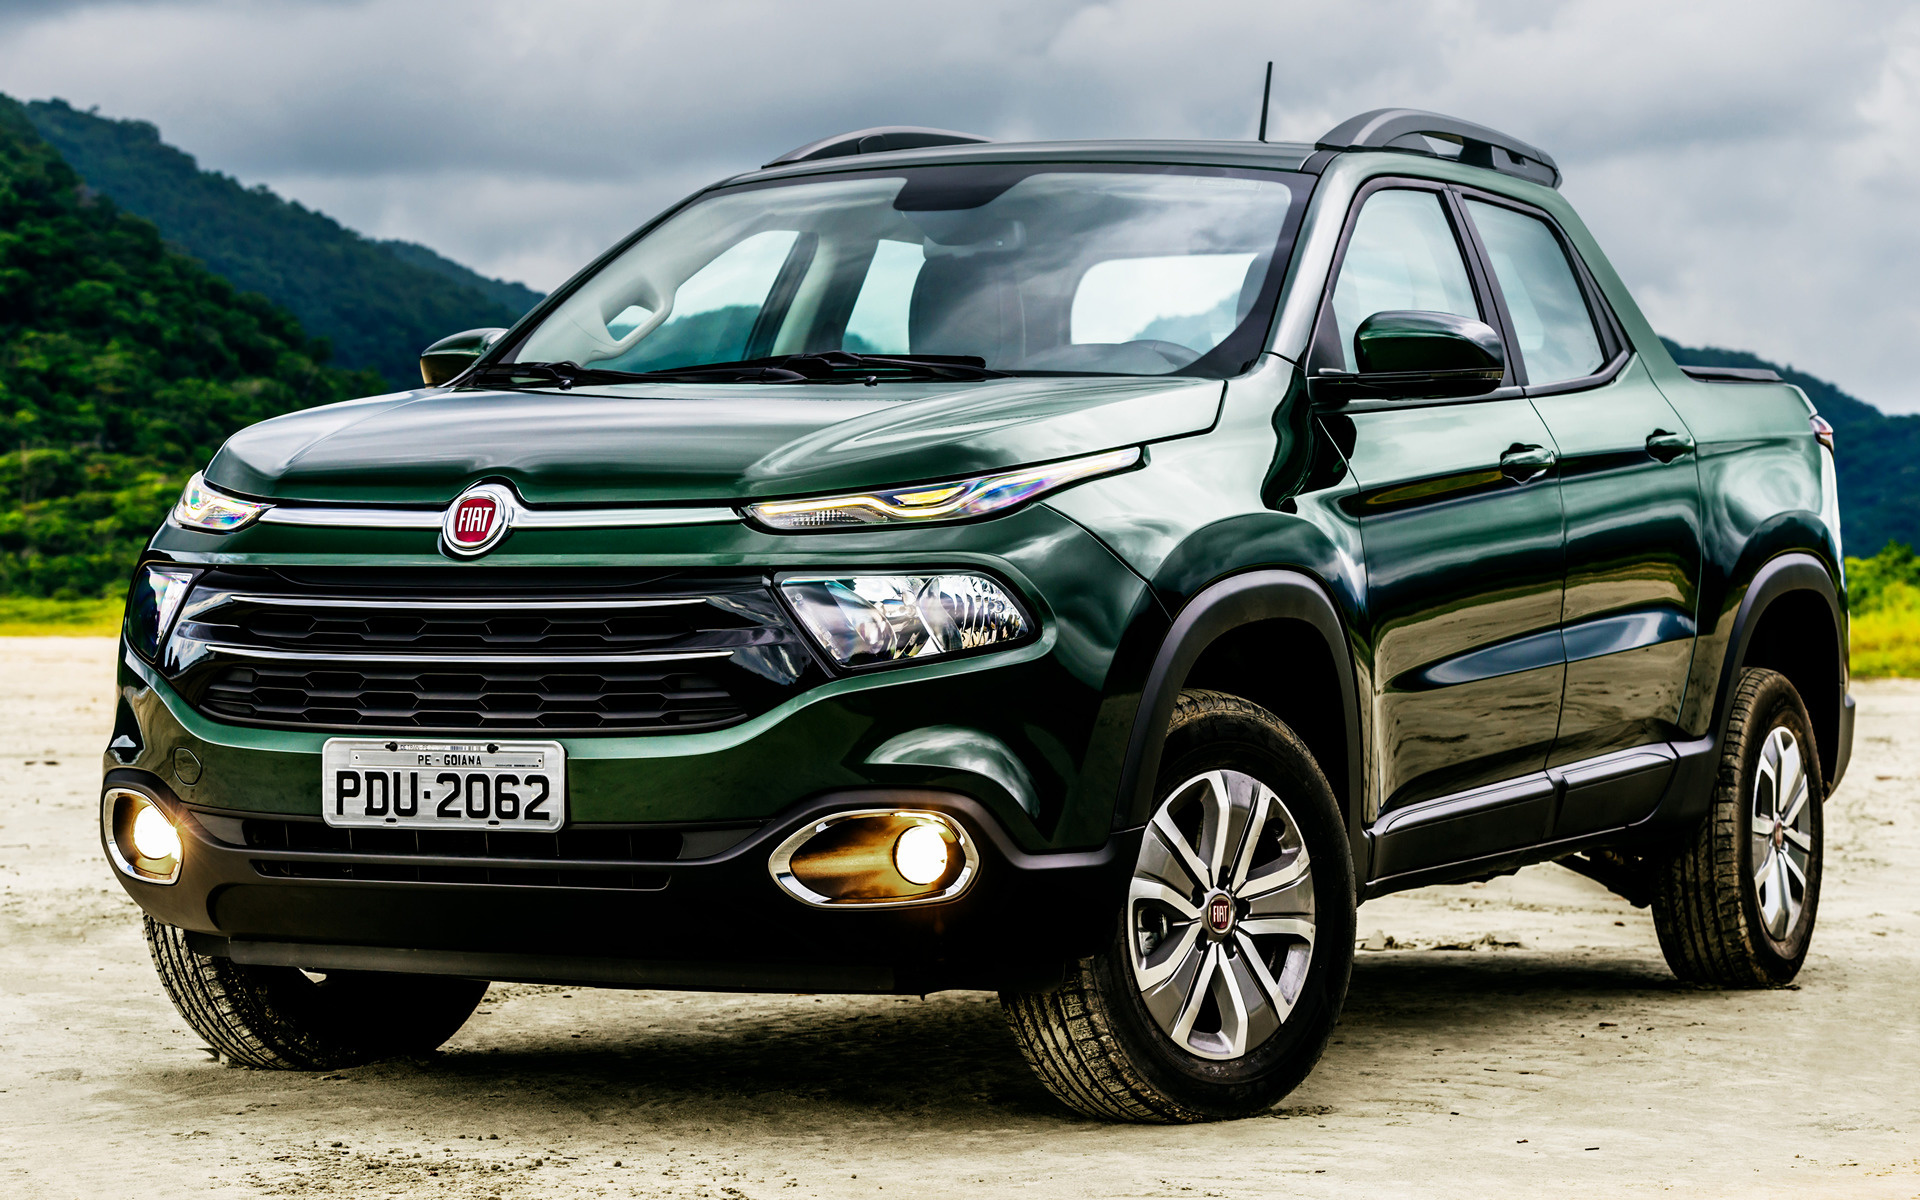 Fiat Toro Freedom (2016) Wallpapers and HD Images - Car Pixel